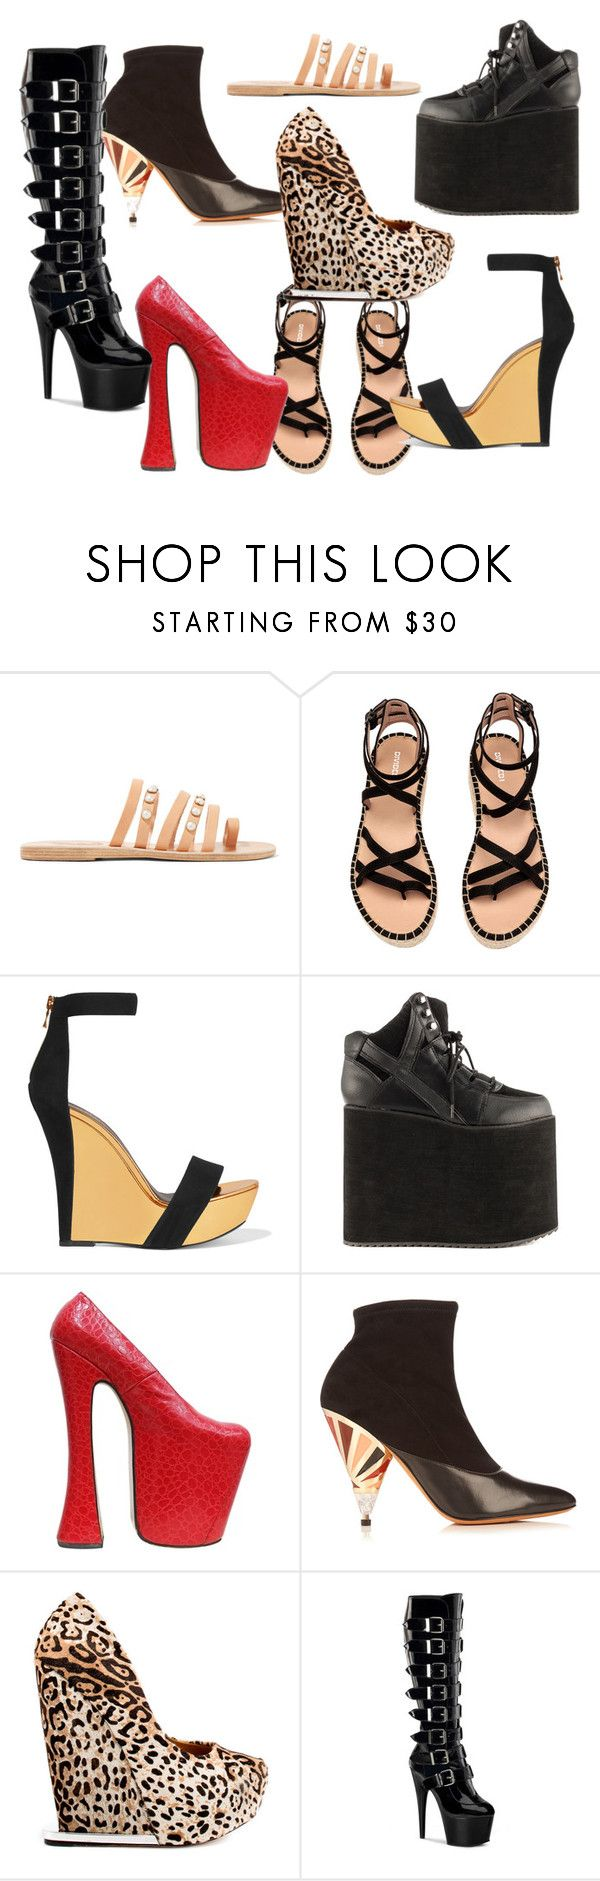 """Shoes"" by praiseoluwole on Polyvore featuring Ancient Greek Sandals, Balmain, Y.R.U., Vivienne Westwood, Givenchy and L.A.M.B."